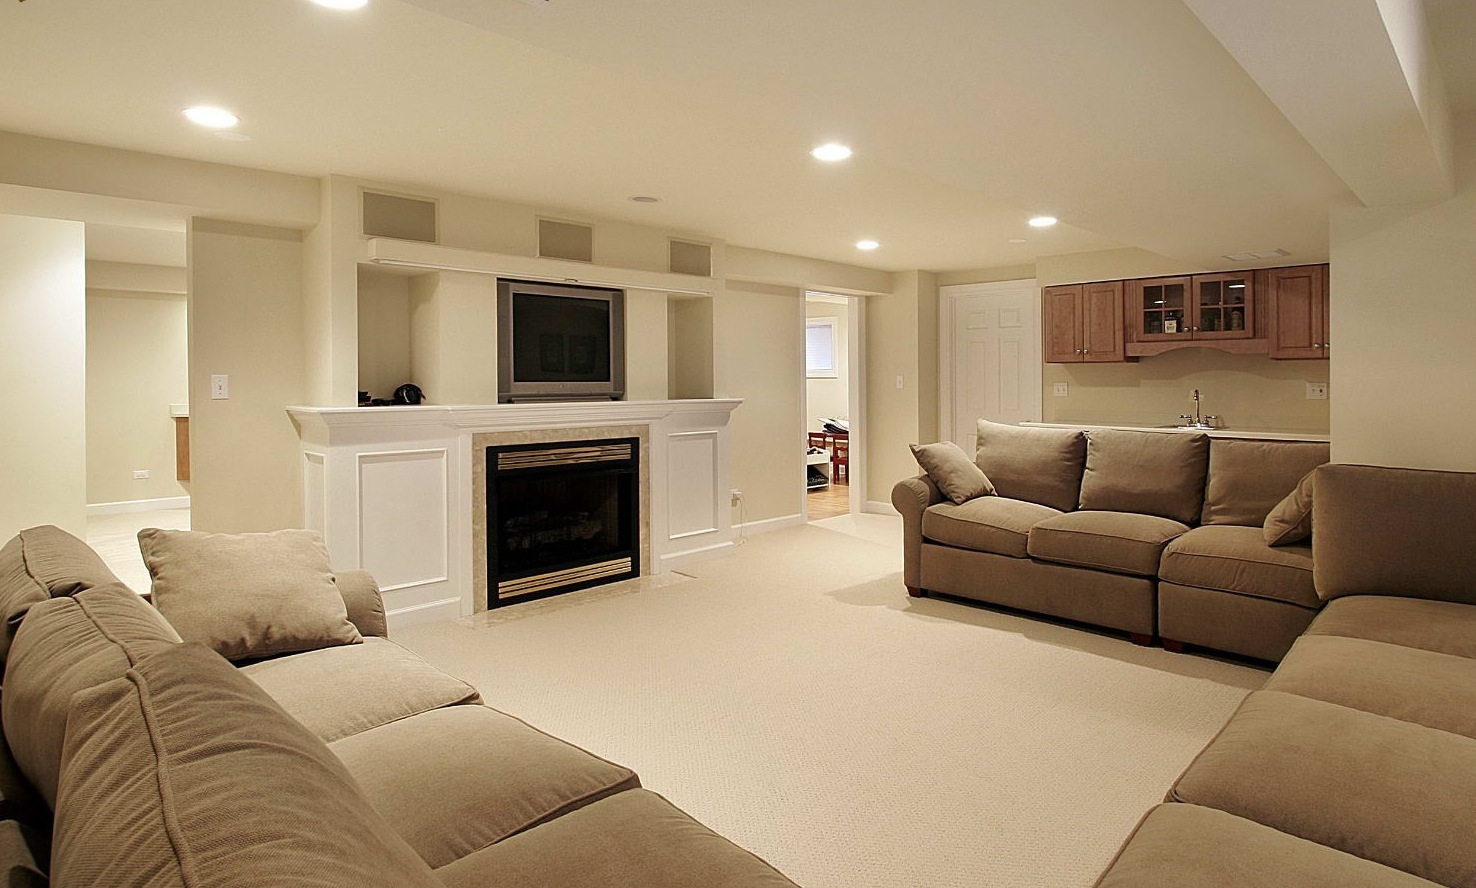 Remodeling Basement Ideas New 30 Basement Remodeling Ideas & Inspiration Design Decoration